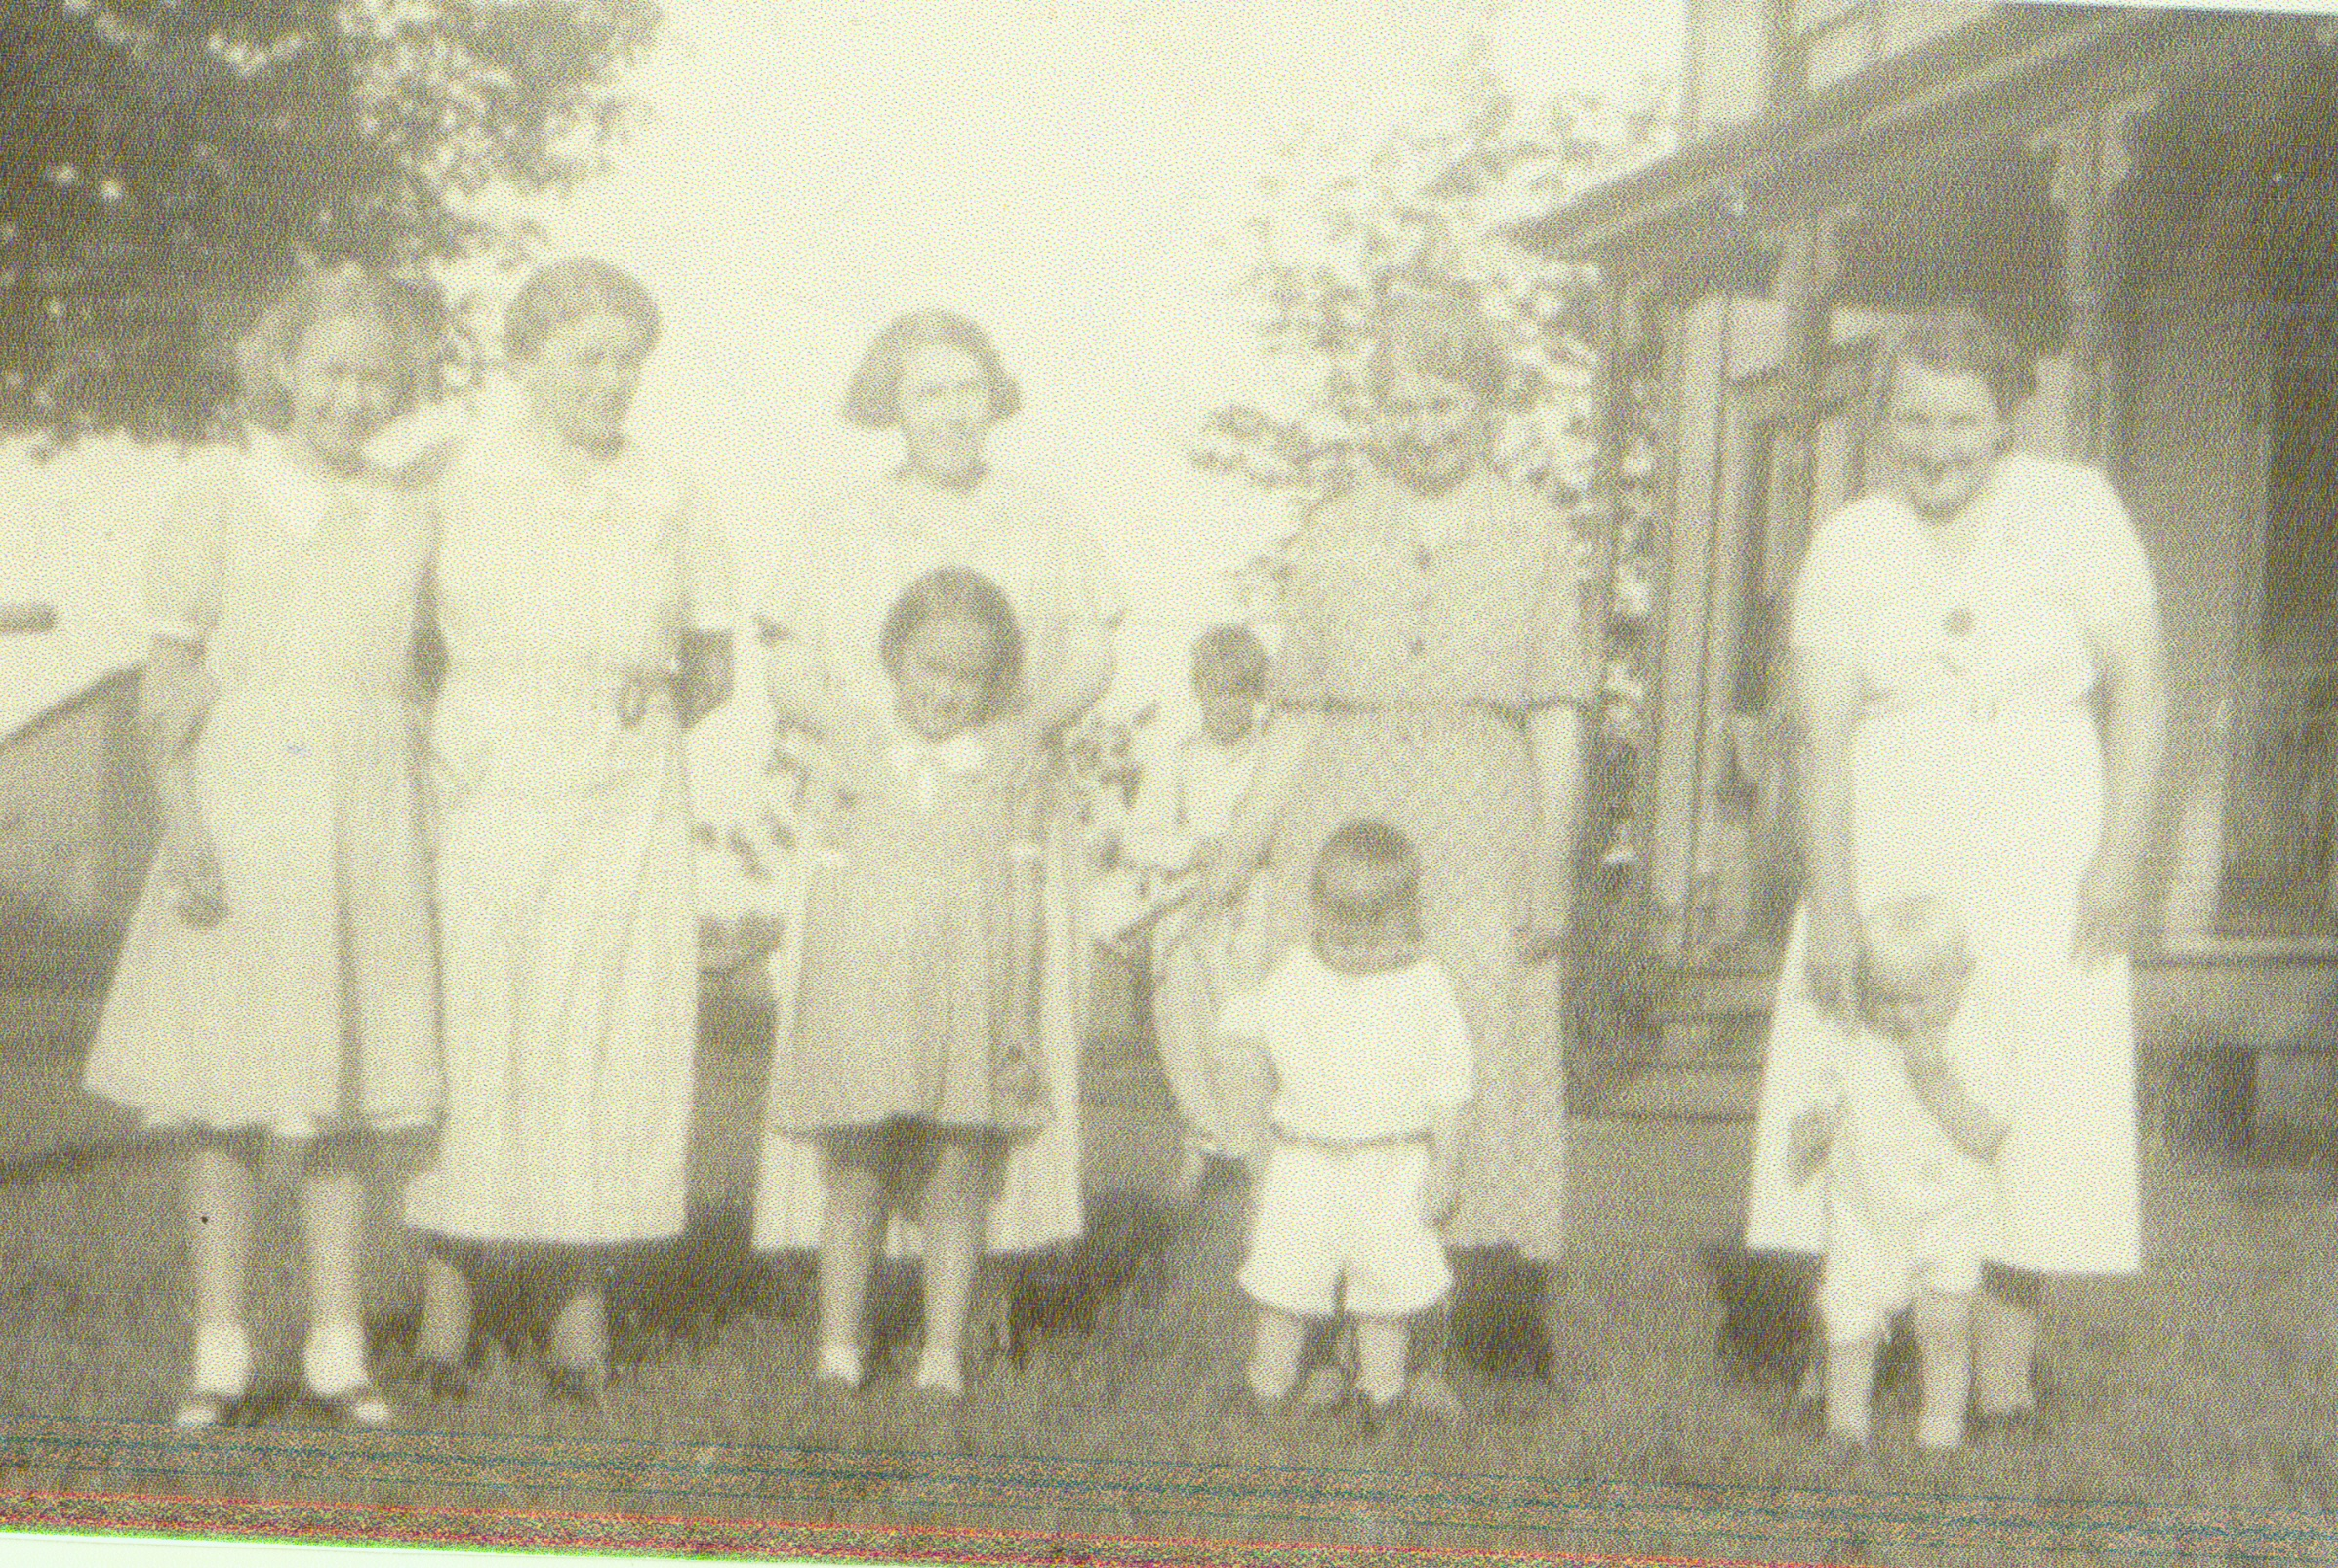 Letter from a Gray Family Matriarch on Preserving History